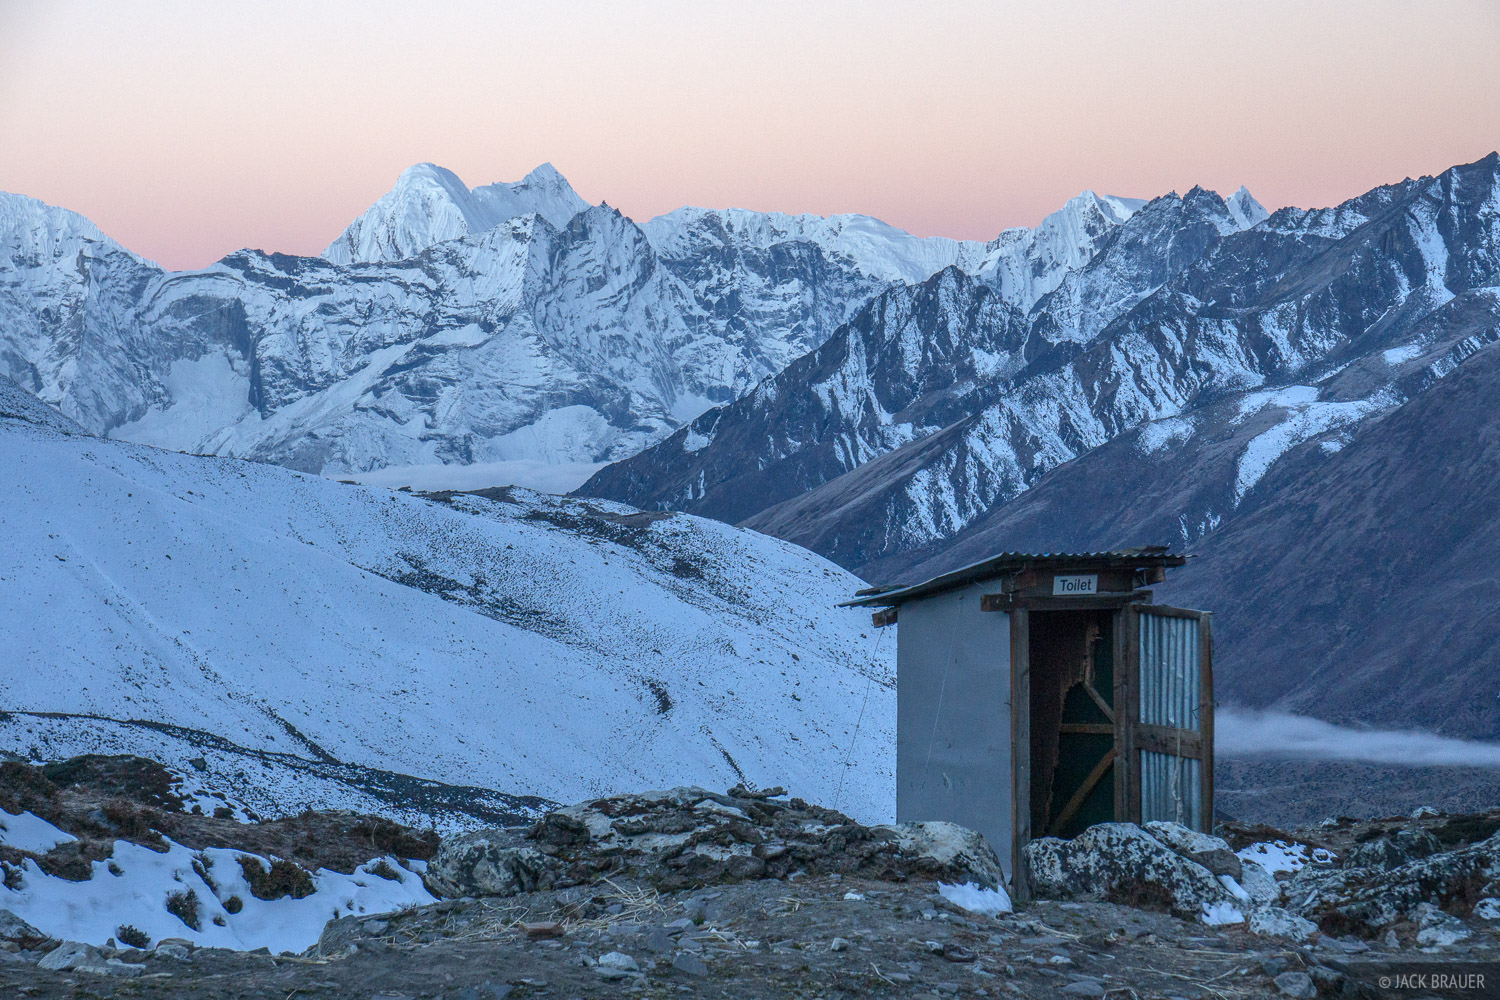 Chukhung,Himalaya,Khumbu,Nepal, outhouse, photo